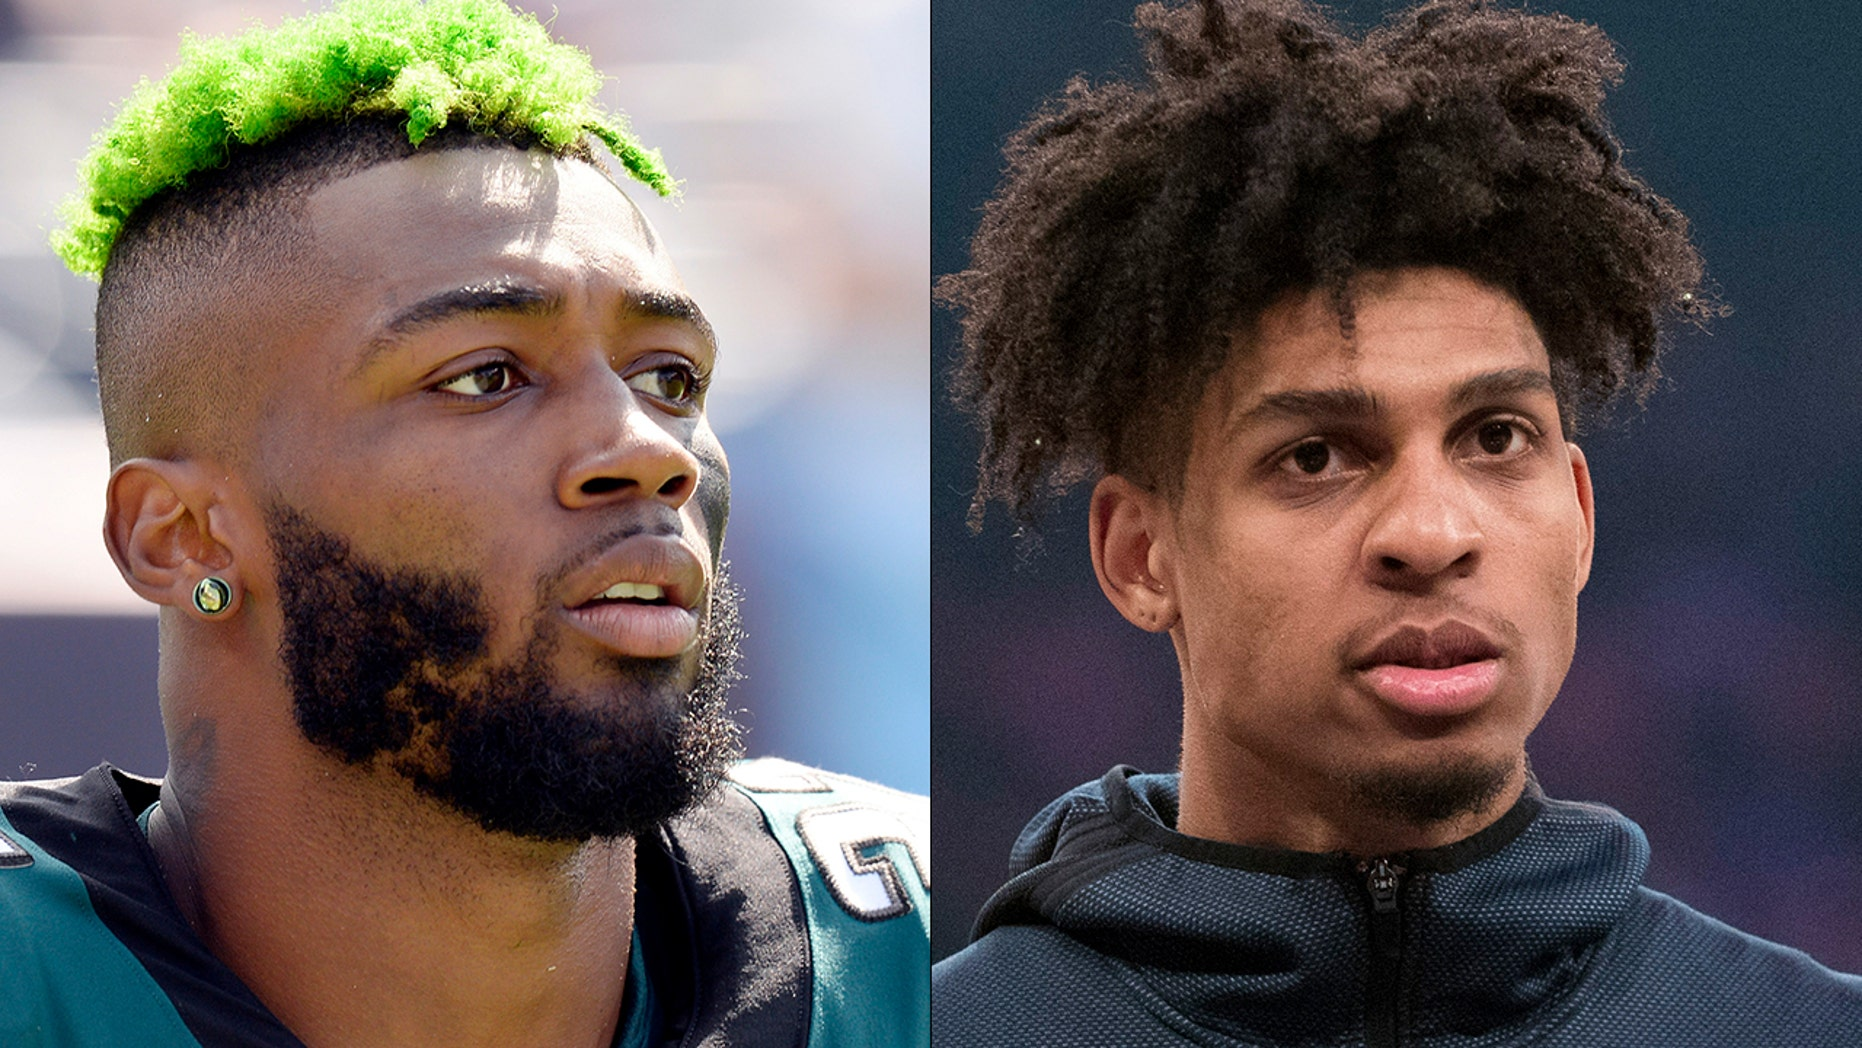 Westlake Legal Group NFL-Mills-Robinson Eagles' Jalen Mills, Wizards' Devin Robinson arrested after brawl outside nightclub, police say Ryan Gaydos fox-news/us/crime fox-news/sports/nfl/philadelphia-eagles fox-news/sports/nfl fox-news/sports/nba/washington-wizards fox-news/sports/nba fox news fnc/sports fnc article 7372c7c7-12fd-534b-8dac-08aac6136230